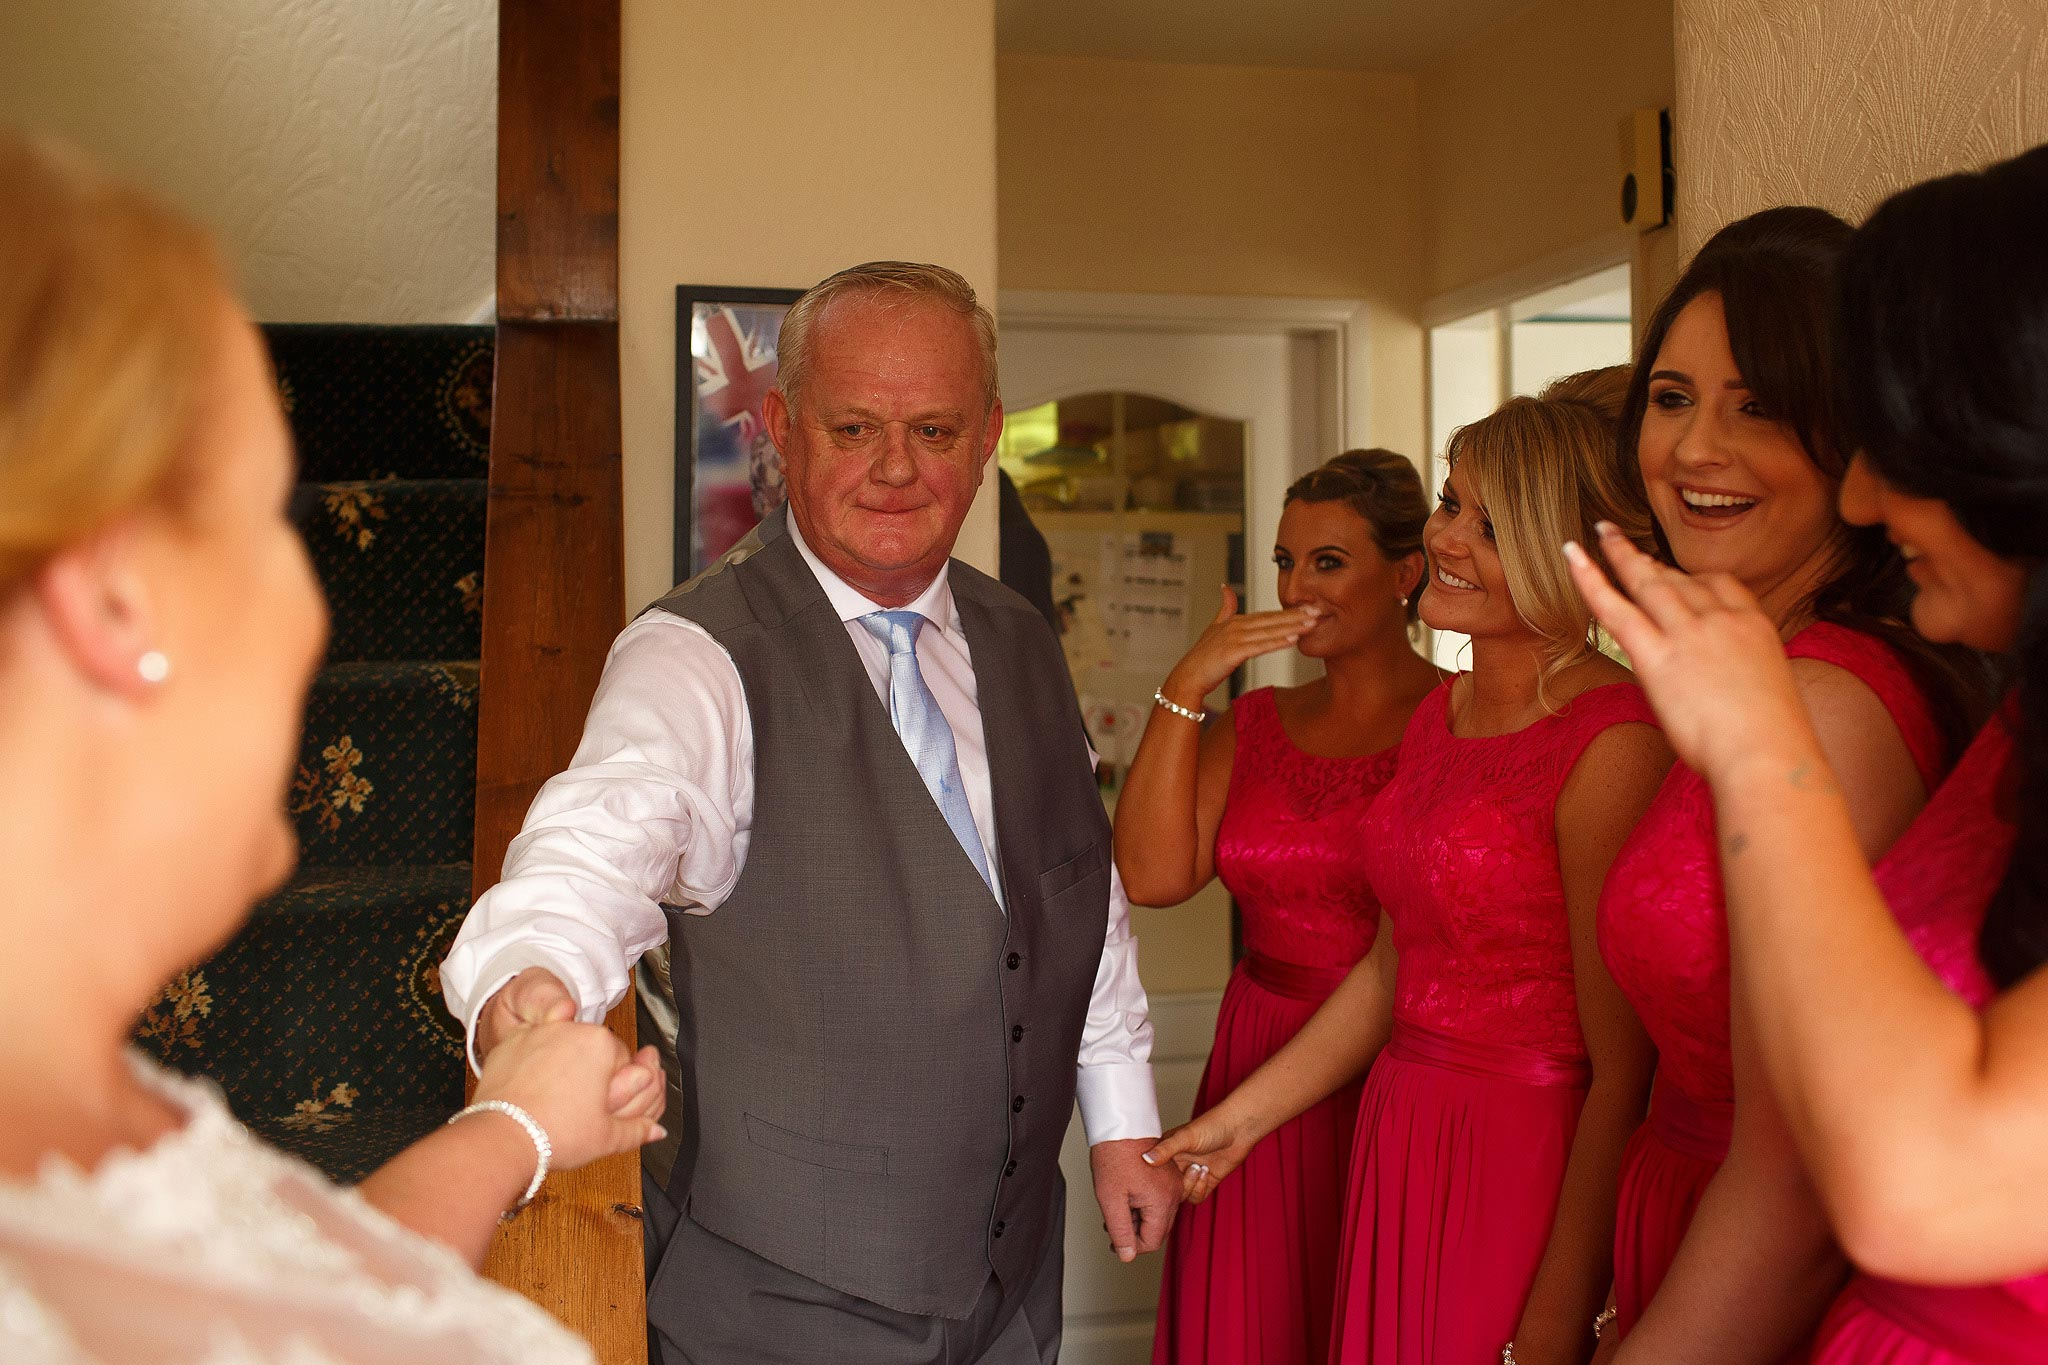 The reactions of bridesmaid and father of the bride as the bride walks down the aisle.